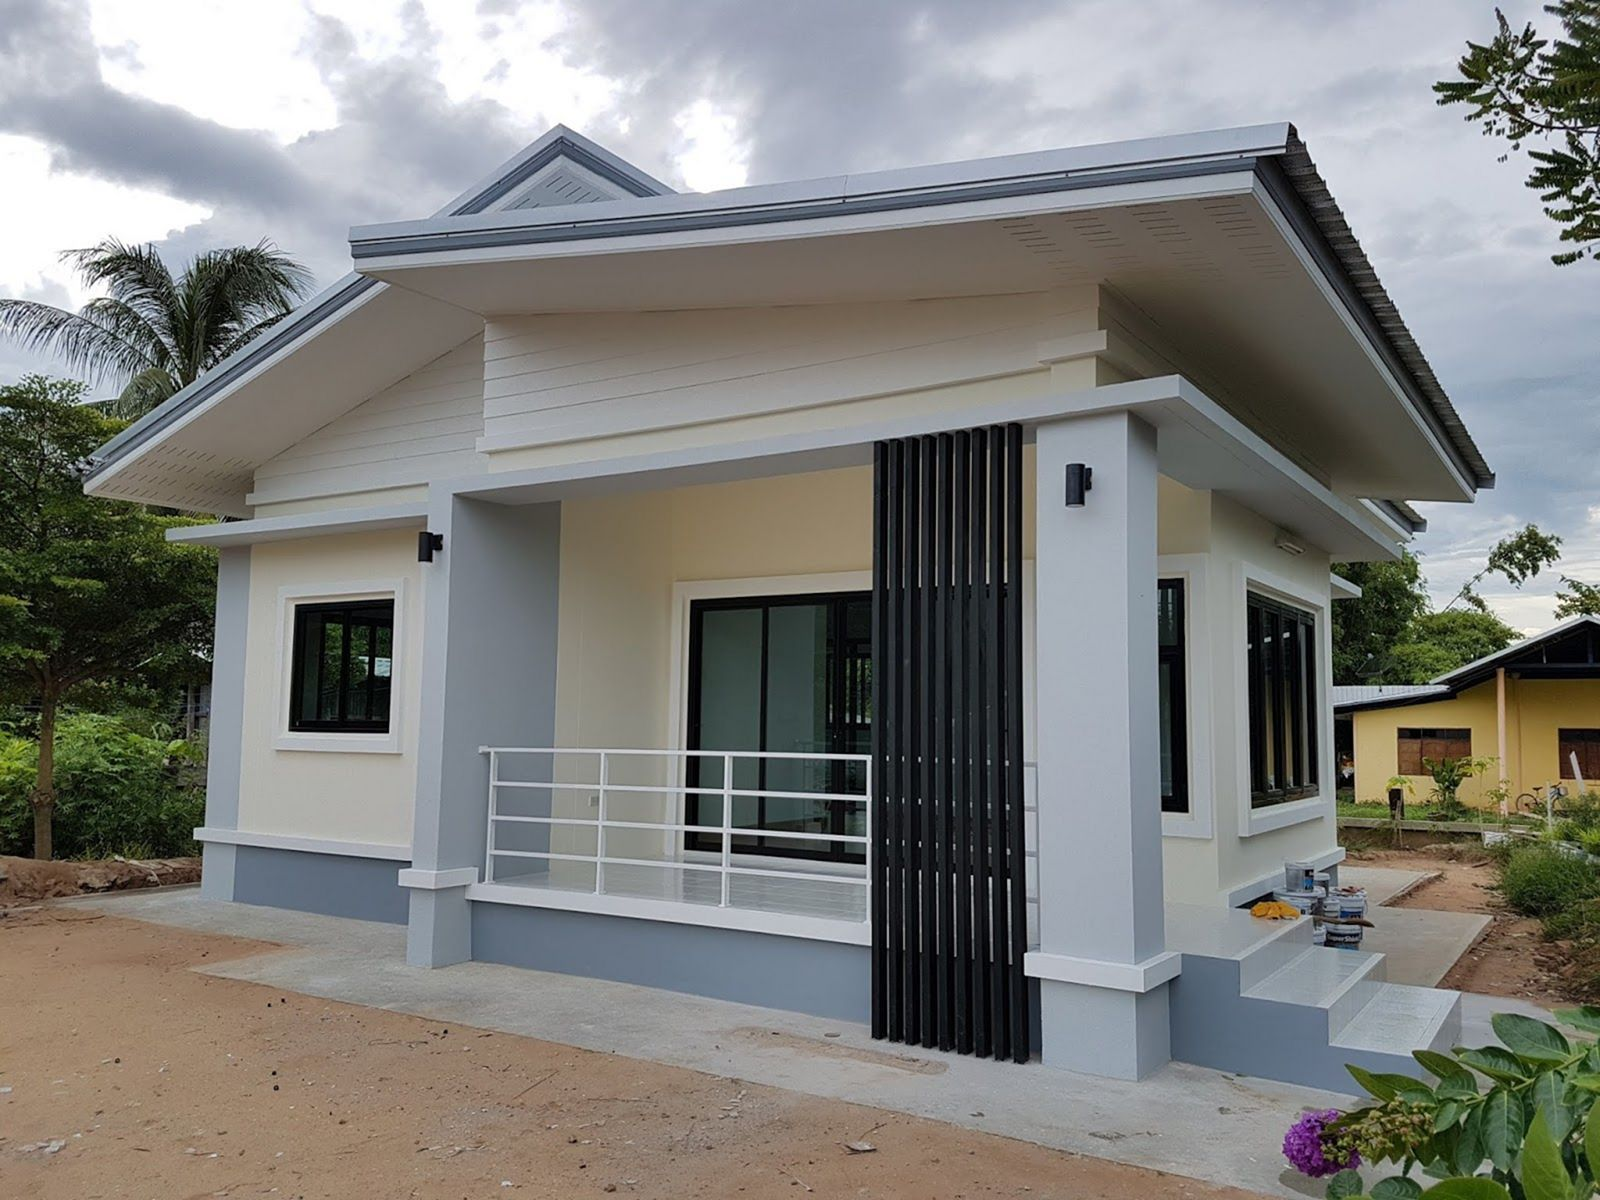 Top 10 Simple Small House Designs On A Limited Budget Small